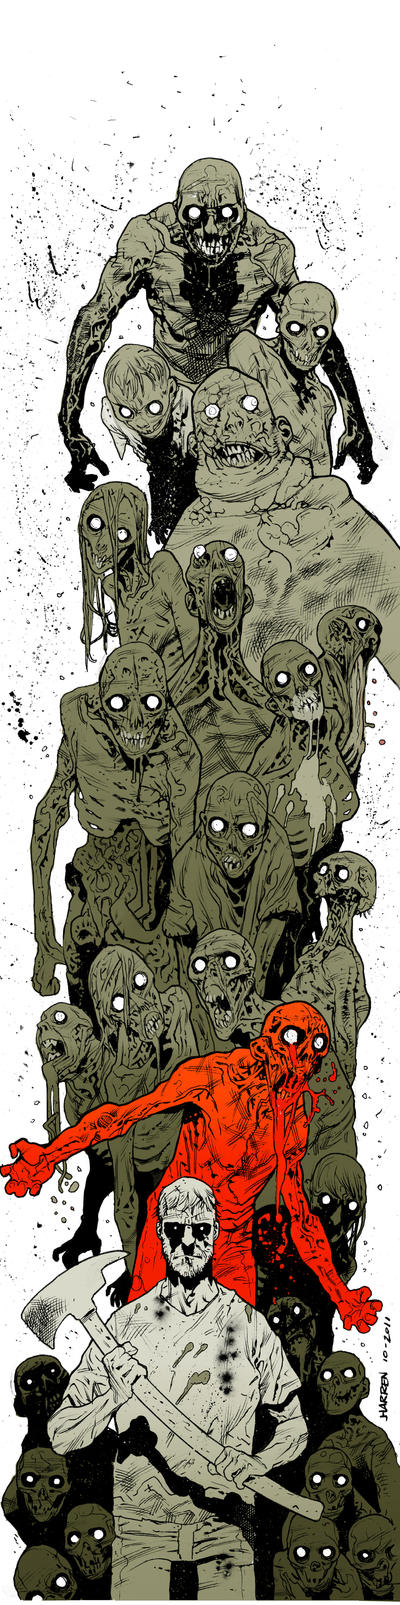 Walking Dead by JHarren